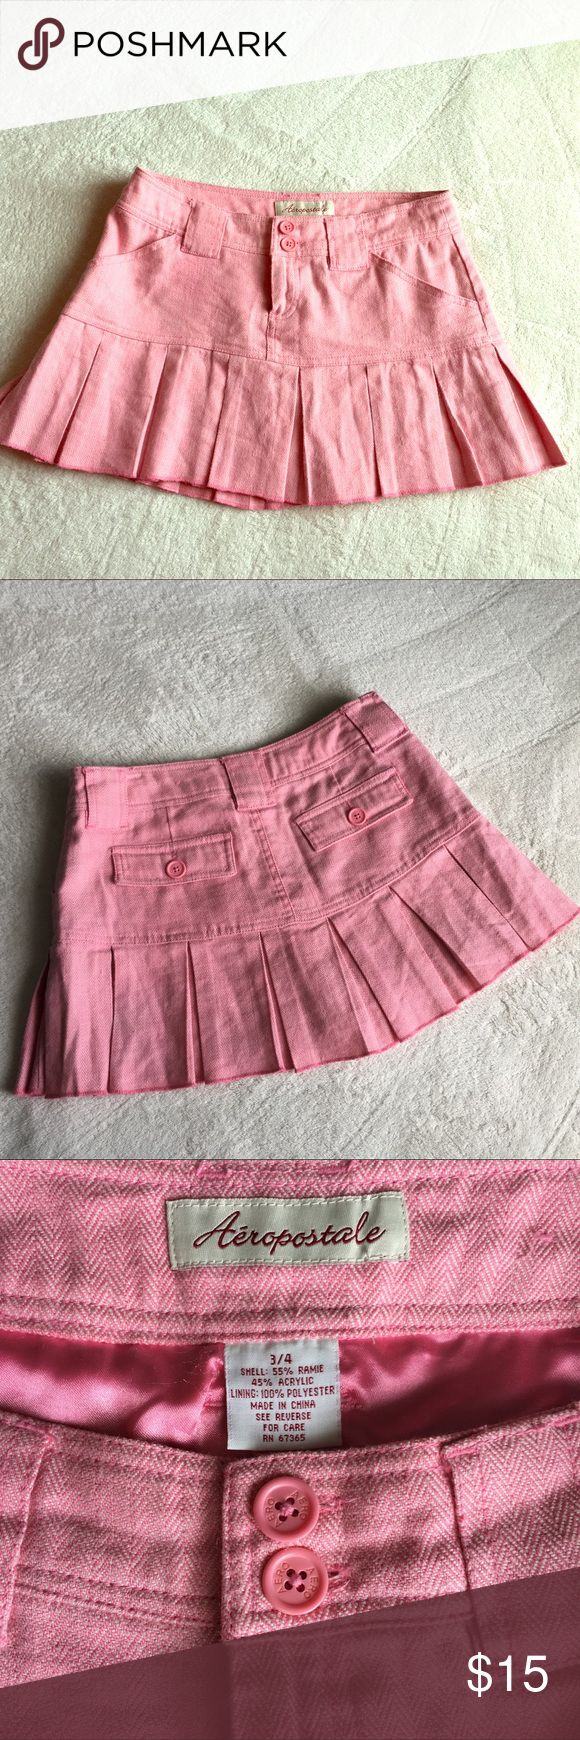 Aeropostale Pleated Miniskirt (UEC) Pink and white herringbone pattern miniskirt. Perfect little cute Summer skirt with a tank top. The versatile material easily translates into an early Autumn ensemble with a little sweater and boots. (I wore it both ways!) Fits true to size and is very comfy. Fabric is 55% Ramie 45% Acrylic (feels like a soft tweed). Inside lining is 100% Polyester (feels like silk). Aeropostale Skirts Mini